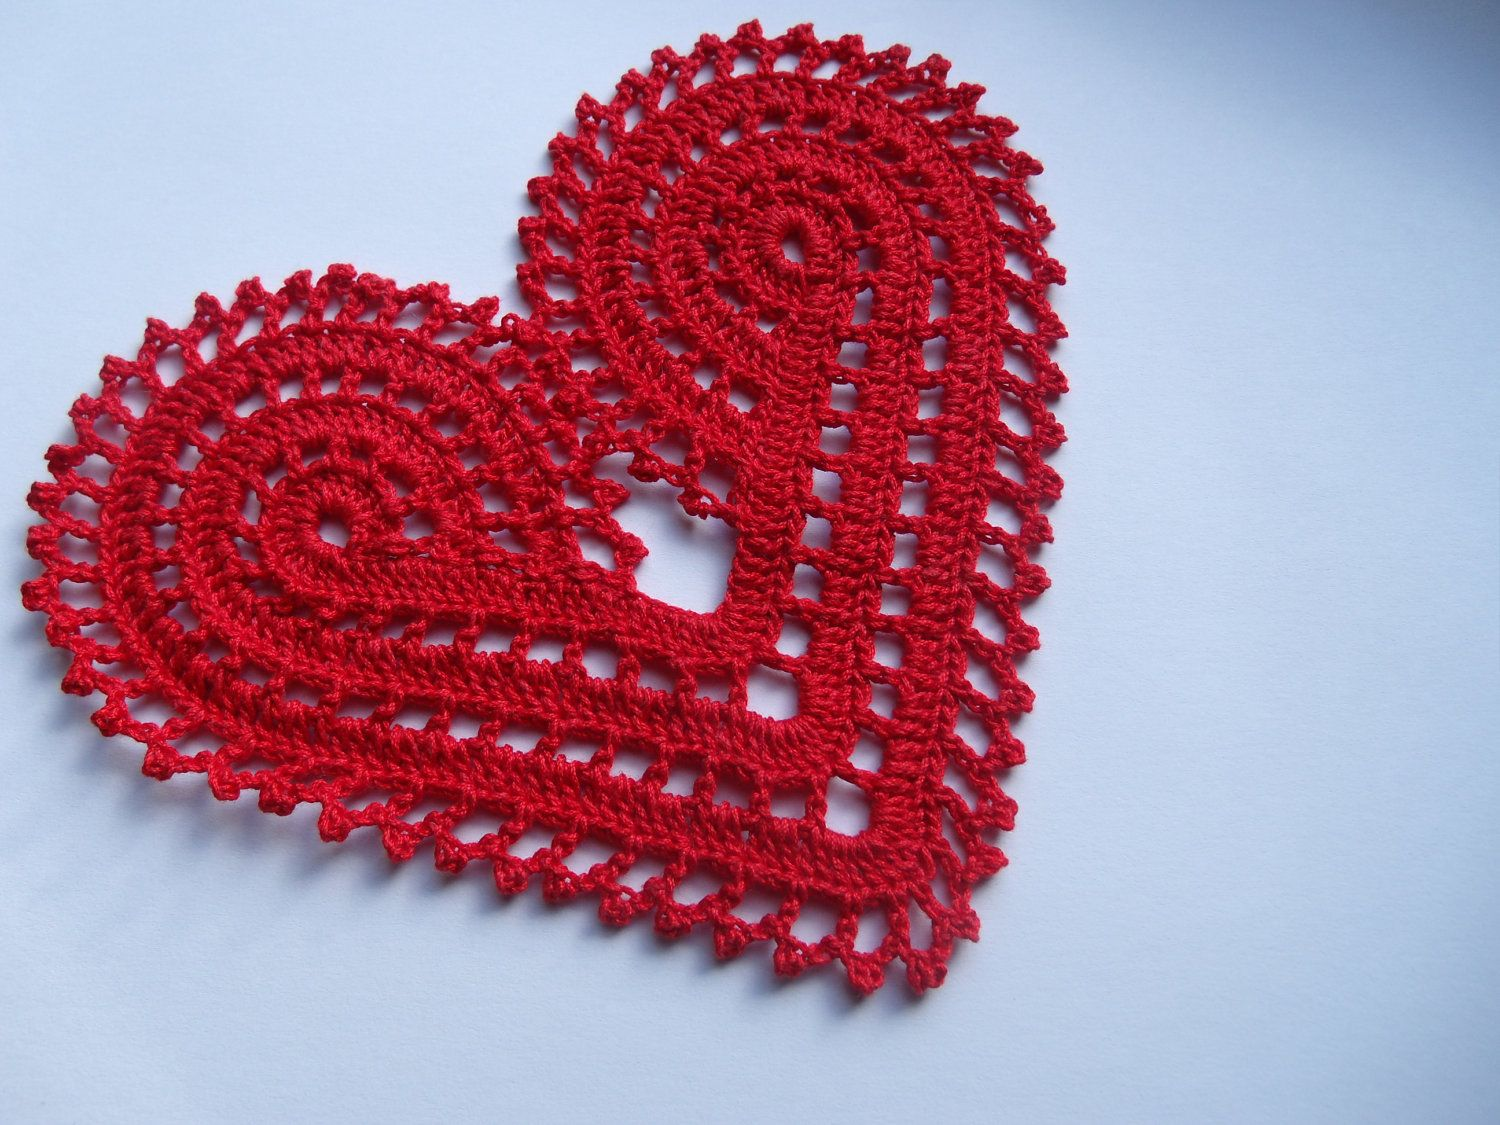 Image detail for -valentine gifts for women: crocheted heart for fashion | make handmade ...